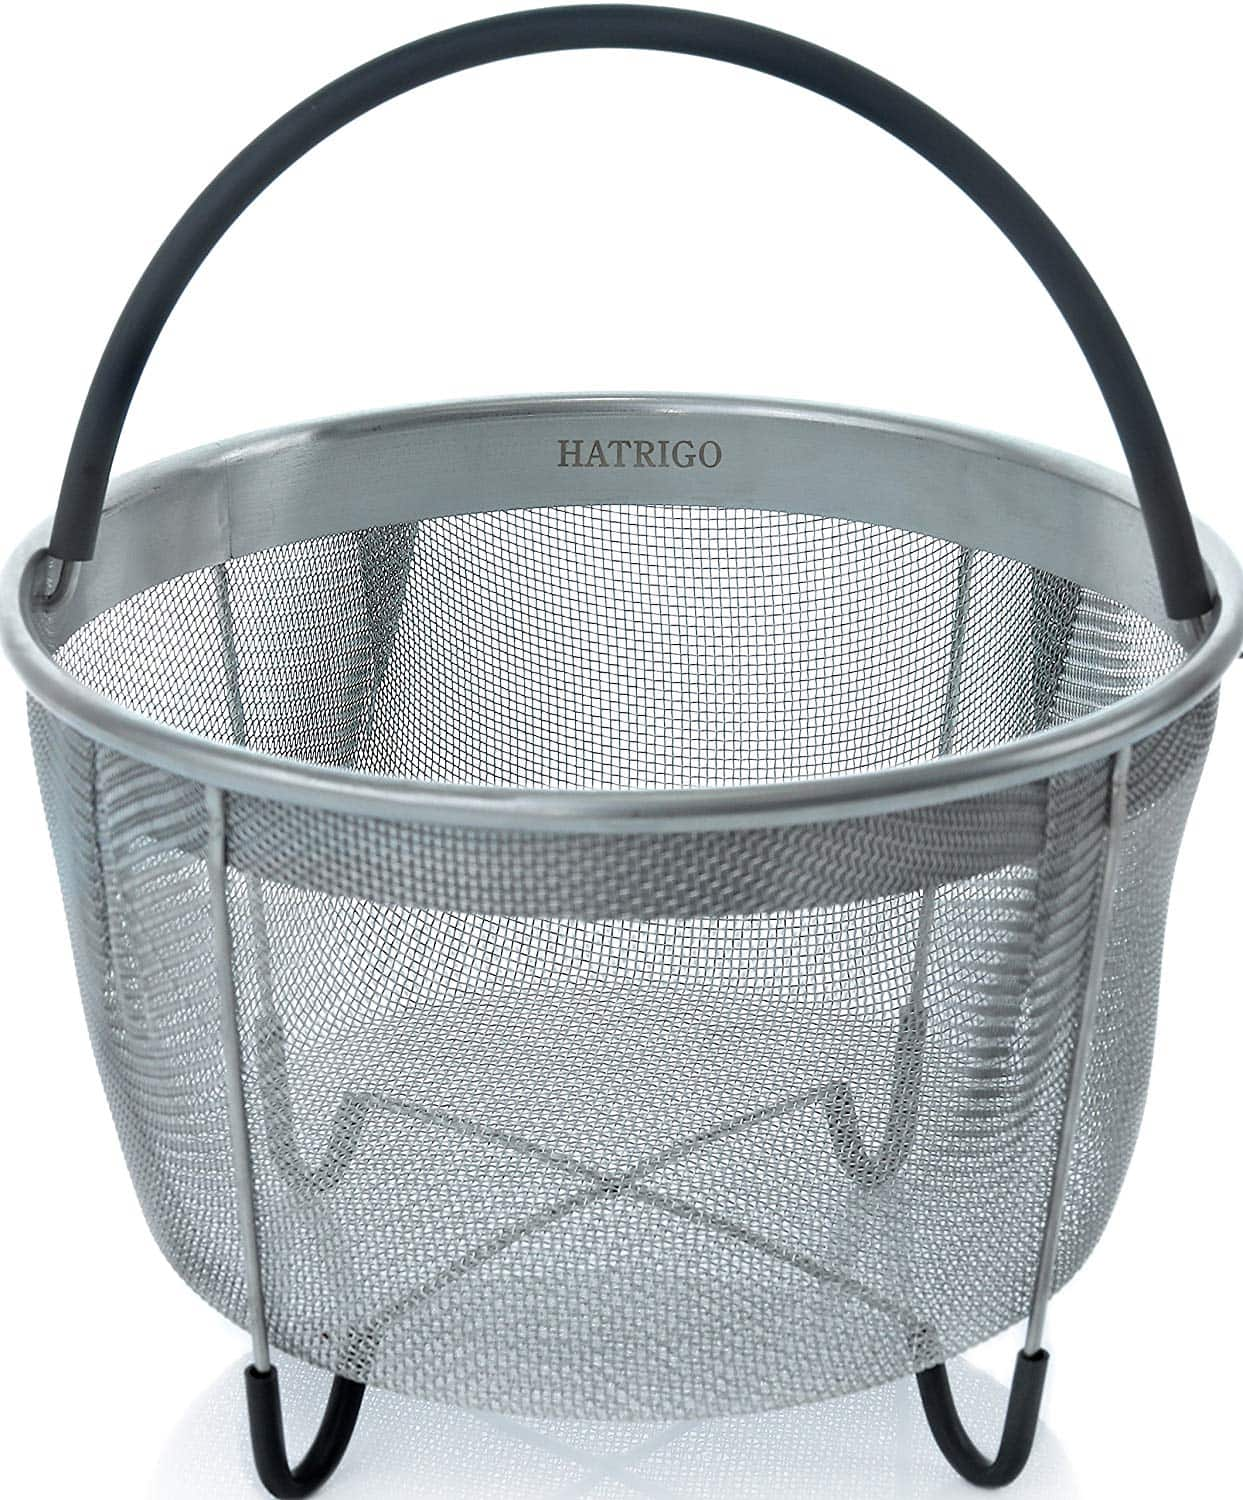 Hatrigo Steamer Basket for Instant Pot Accessories  3qt 6qt 8qt From$14.97